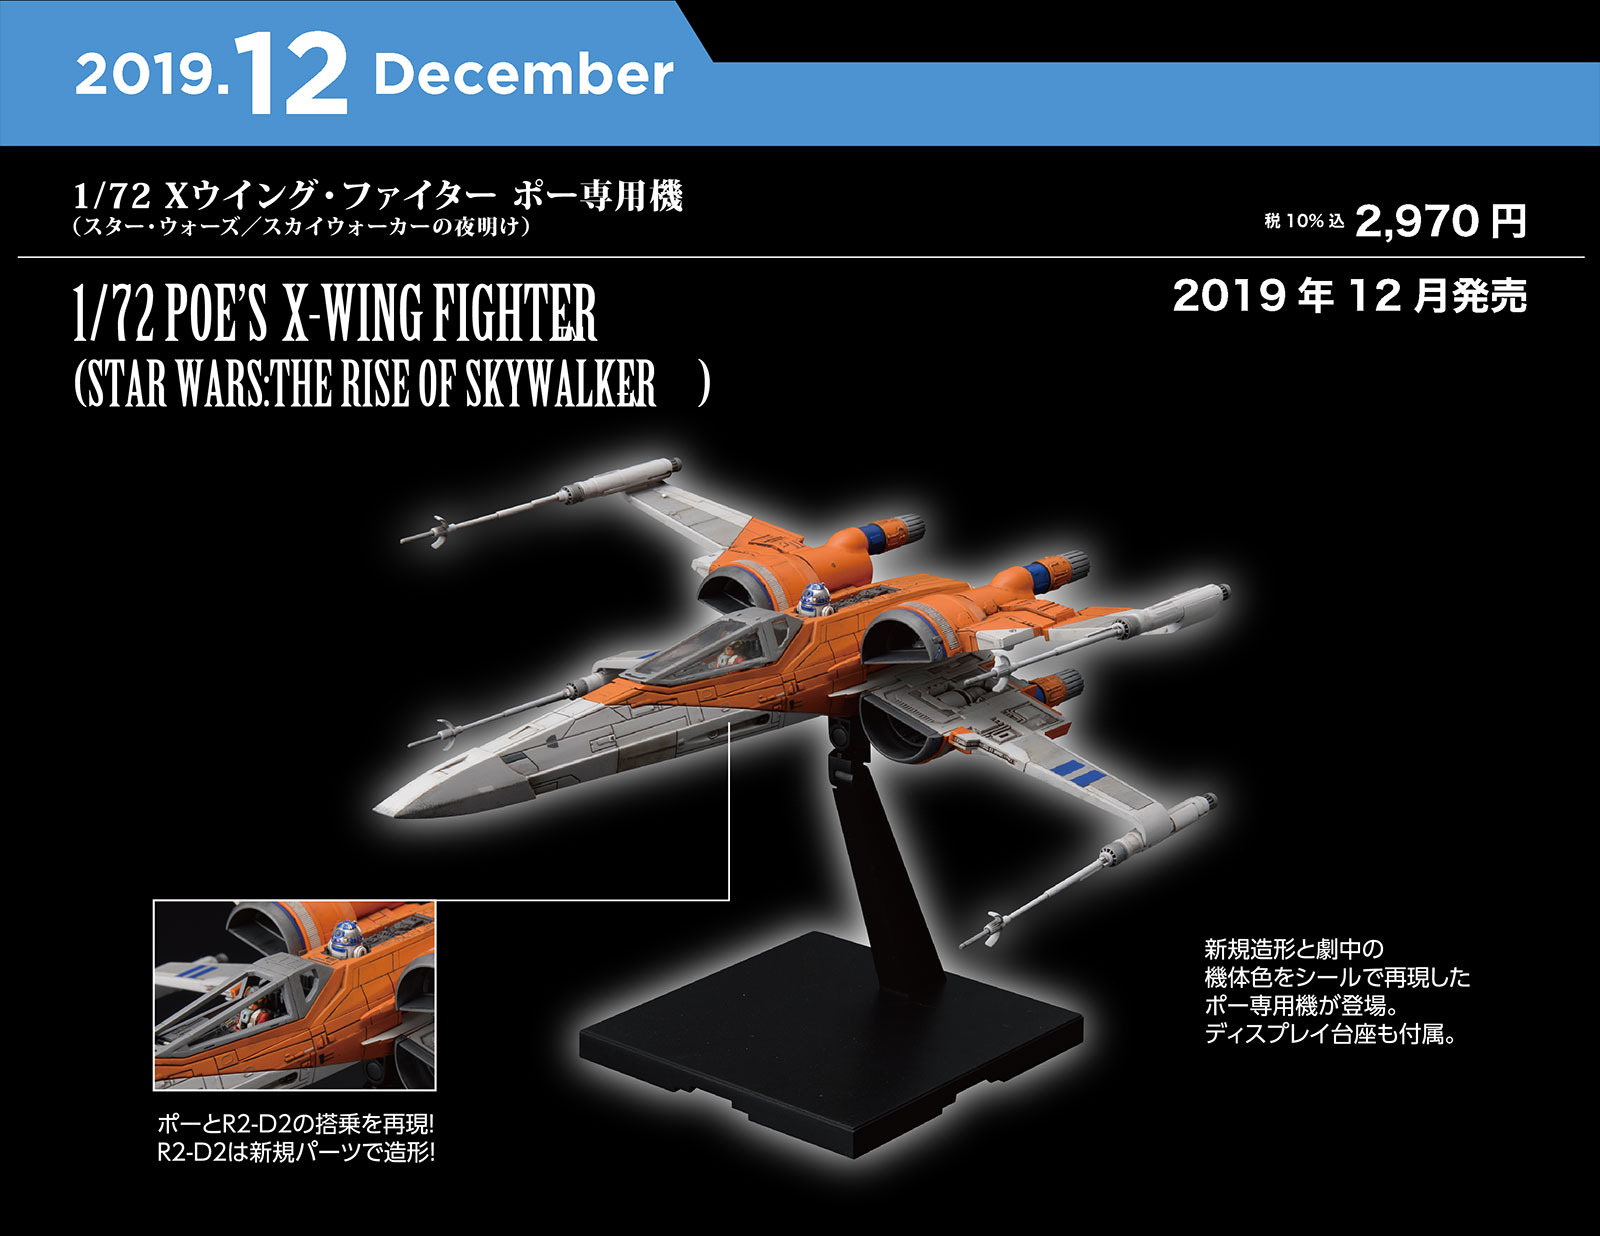 Star Wars Tros X Wing Model Kit Reveals Poe Flying With R2 D2 Not Bb 8